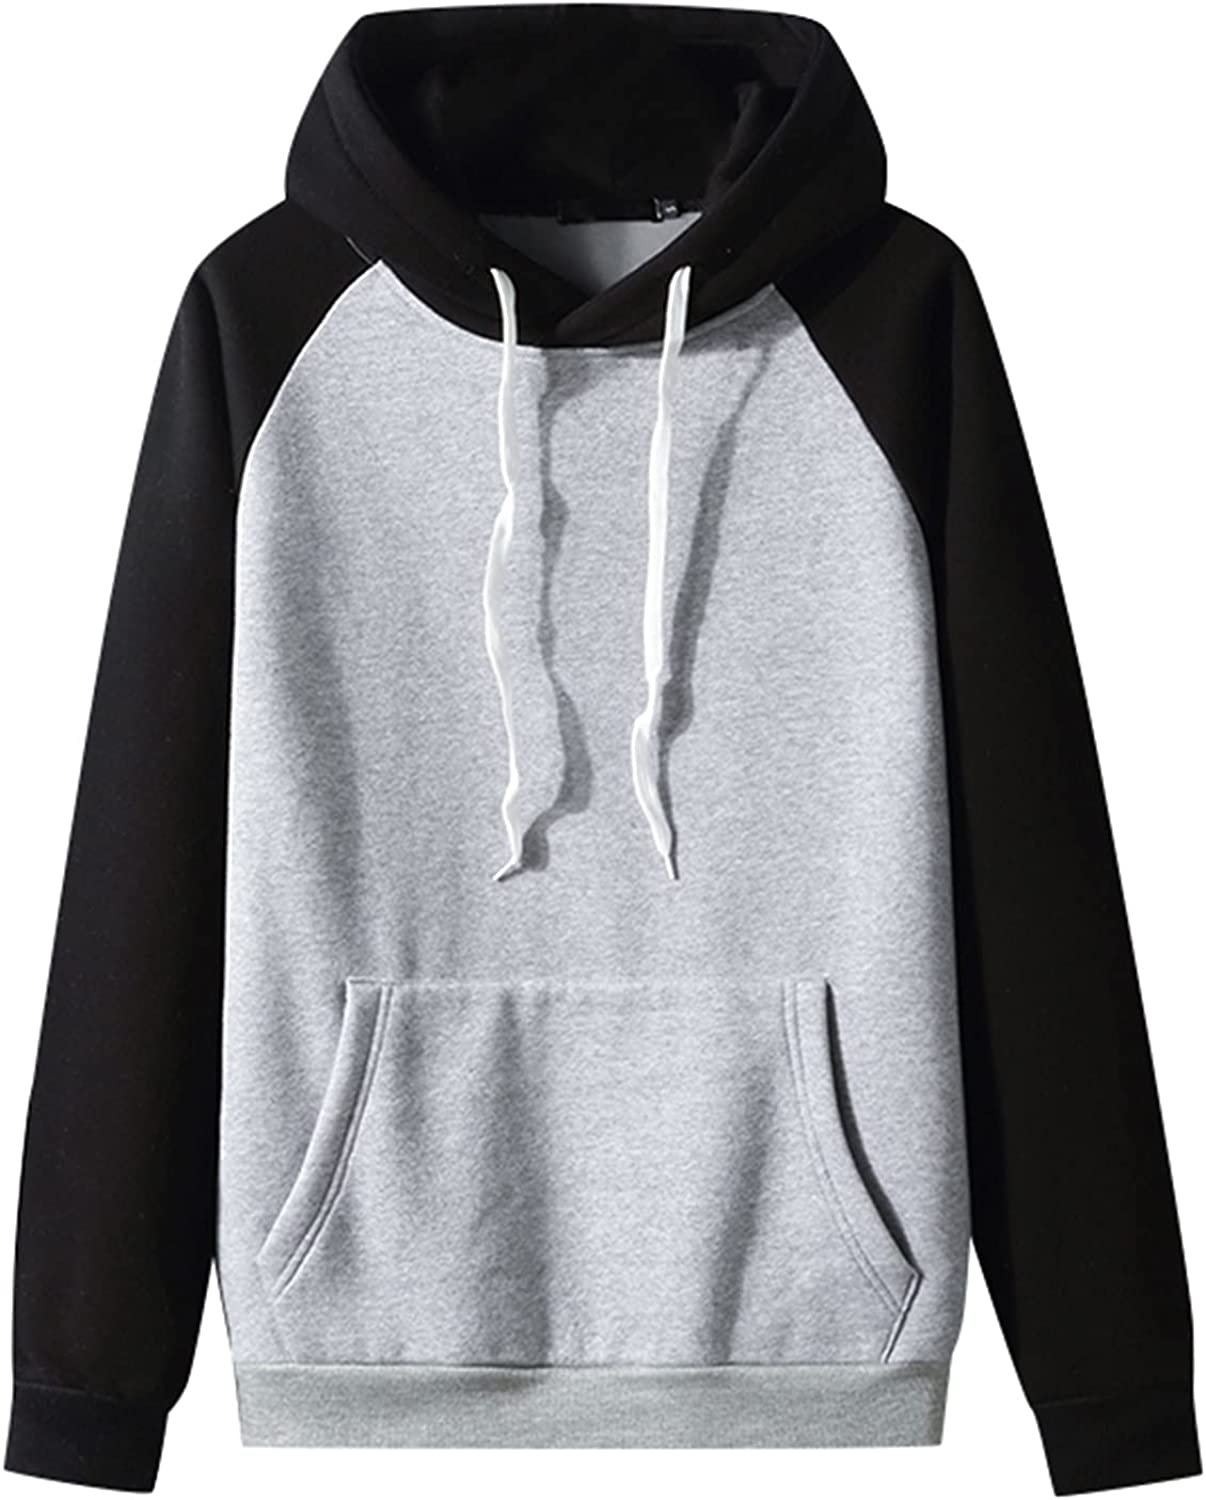 Men's Autumn Pollover Hoodies Slim Casual Patchwork Long Sleeve Sweatershirts